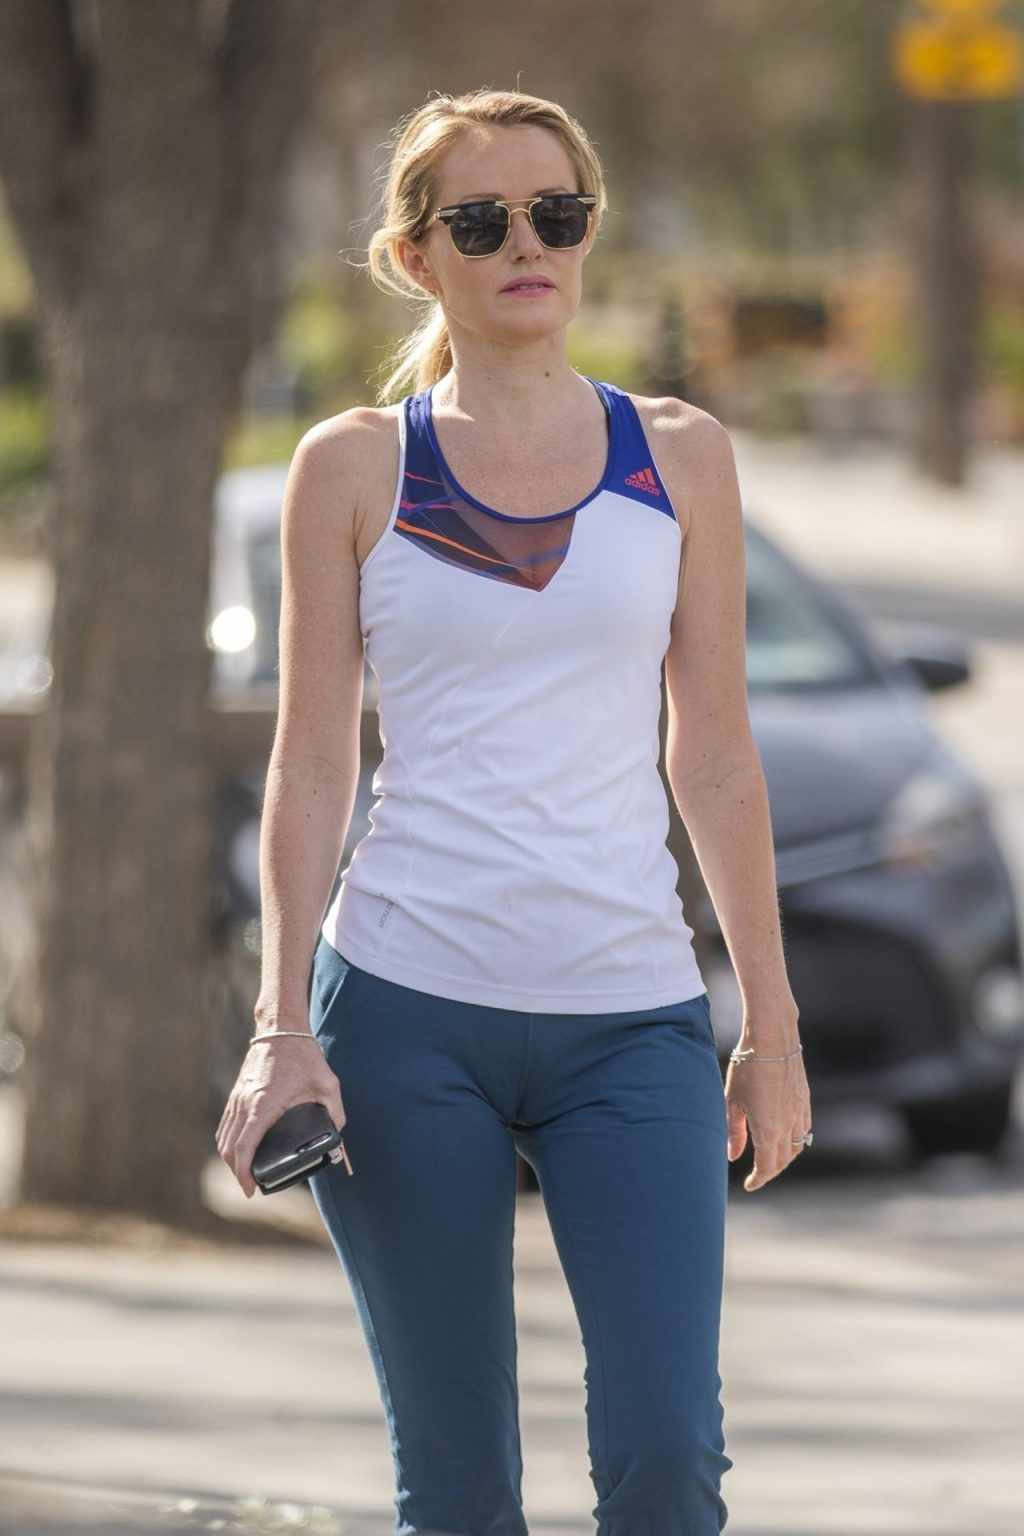 Hayley Roberts Hasselhoff Suffers a Wardrobe Malfunction While on Morning Jog (53 Photos)